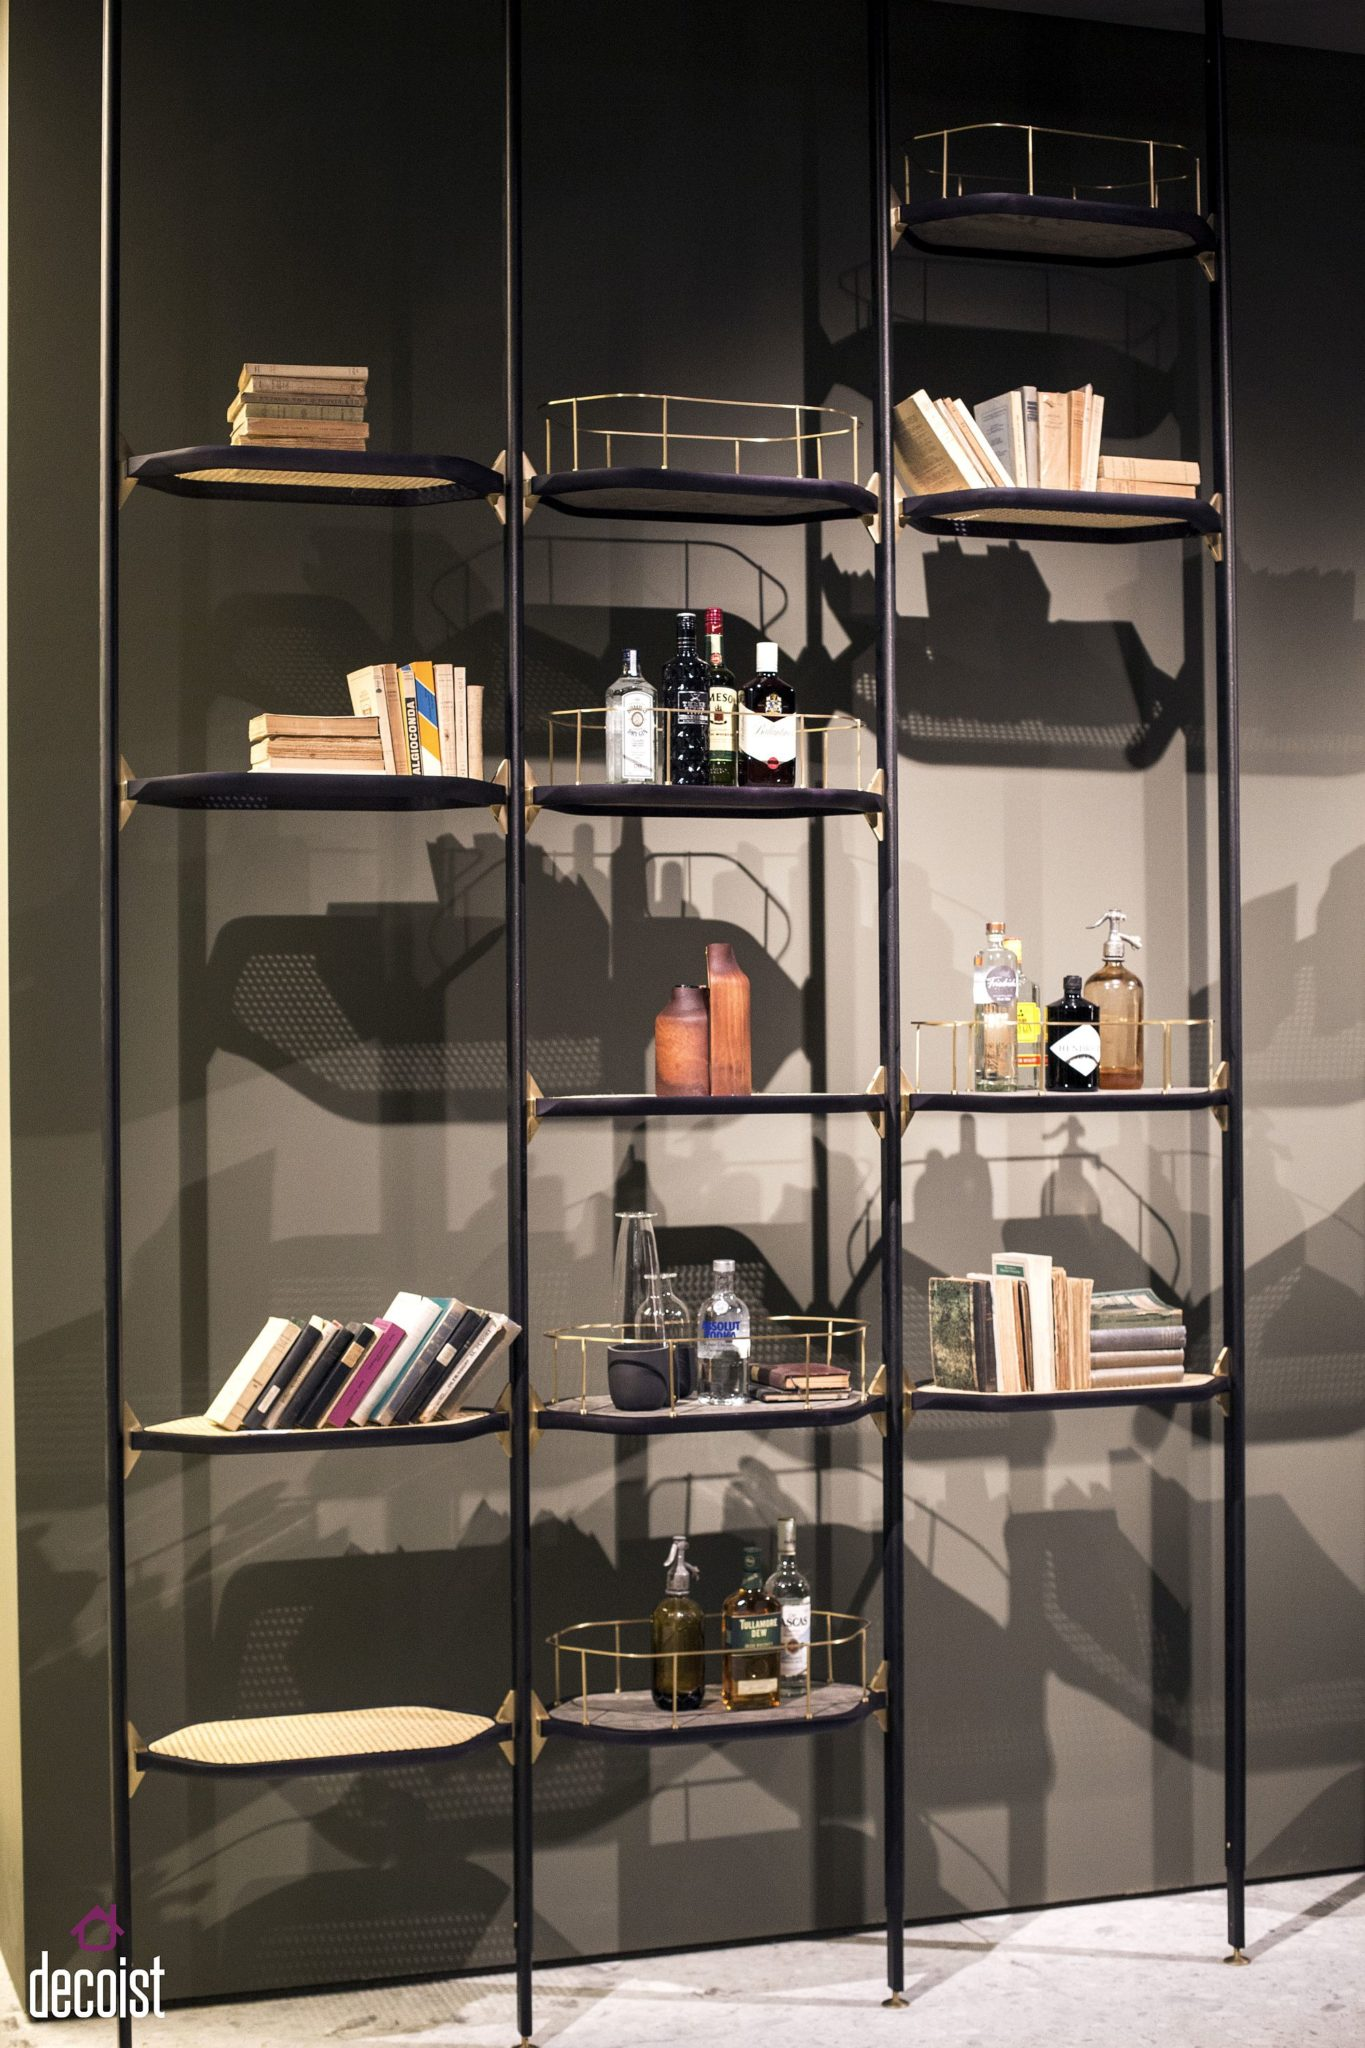 Standalone metallic shelving for those who wish to move away from the usual floating shelves